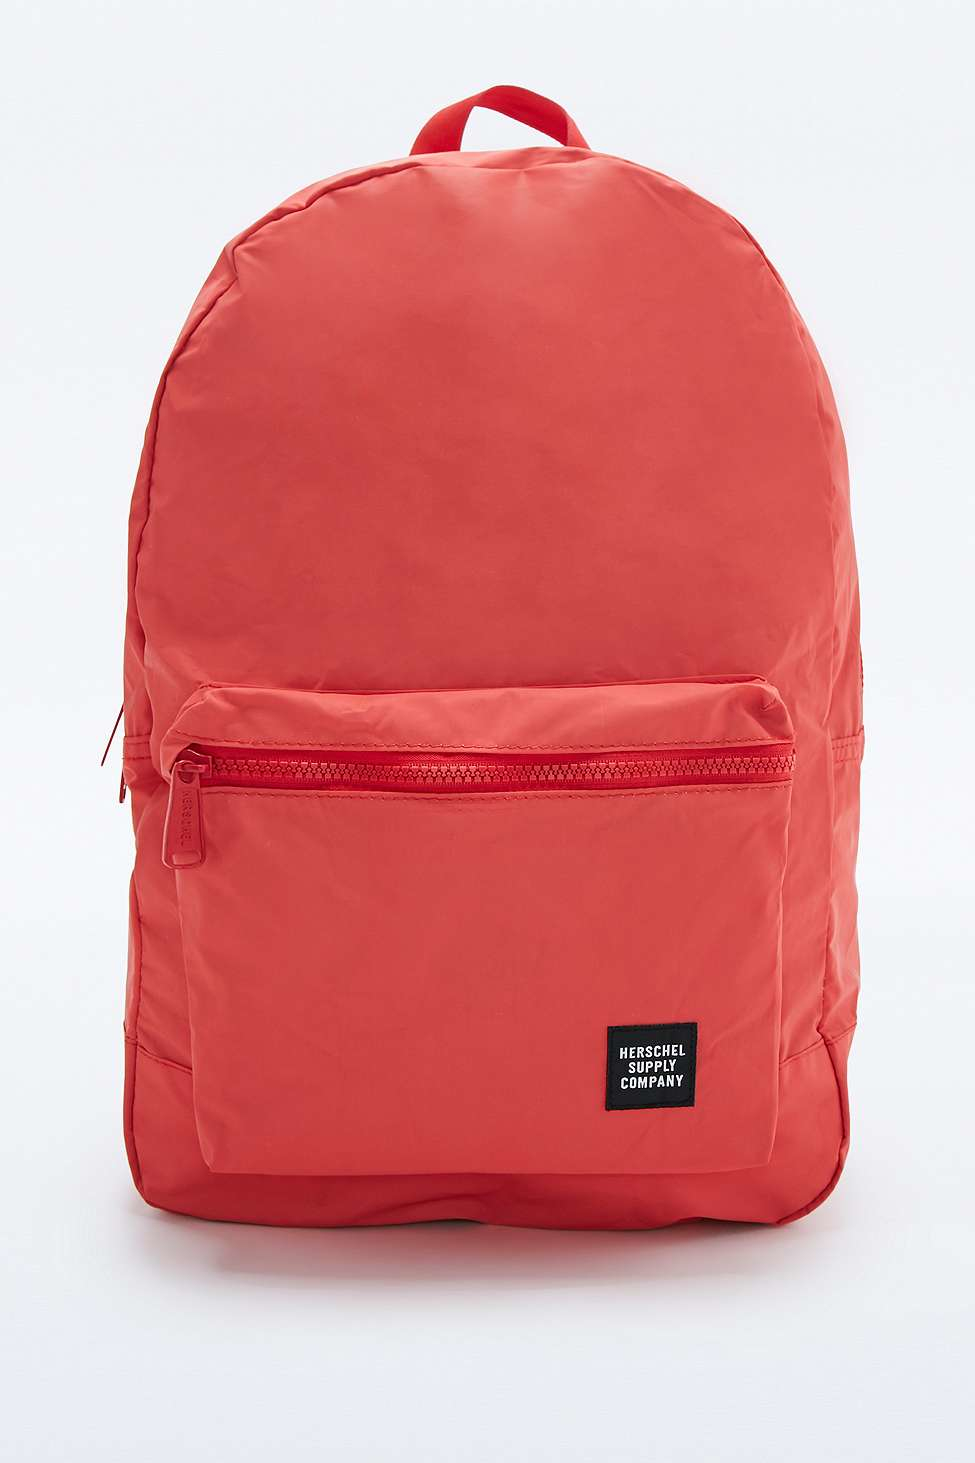 Herschel Supply Co. Day night Packable Daypack Red Reflective ... 2e59406b605bc